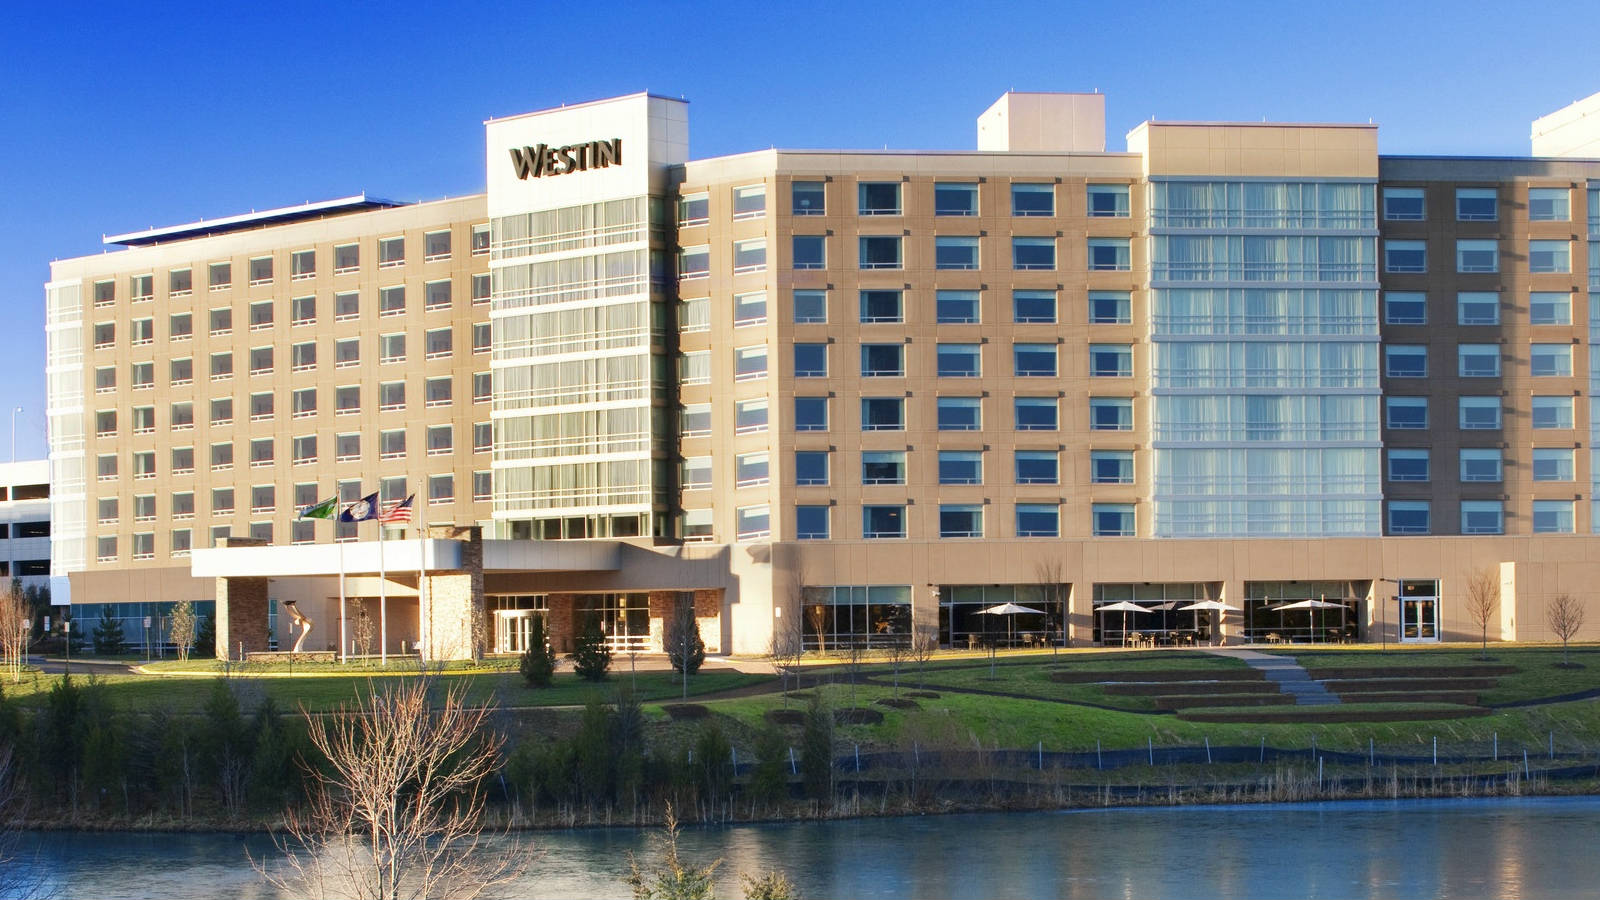 The Westin Washington Dulles Airport 2520 Wer Terrace Herndon Va Hotels Motels Mapquest